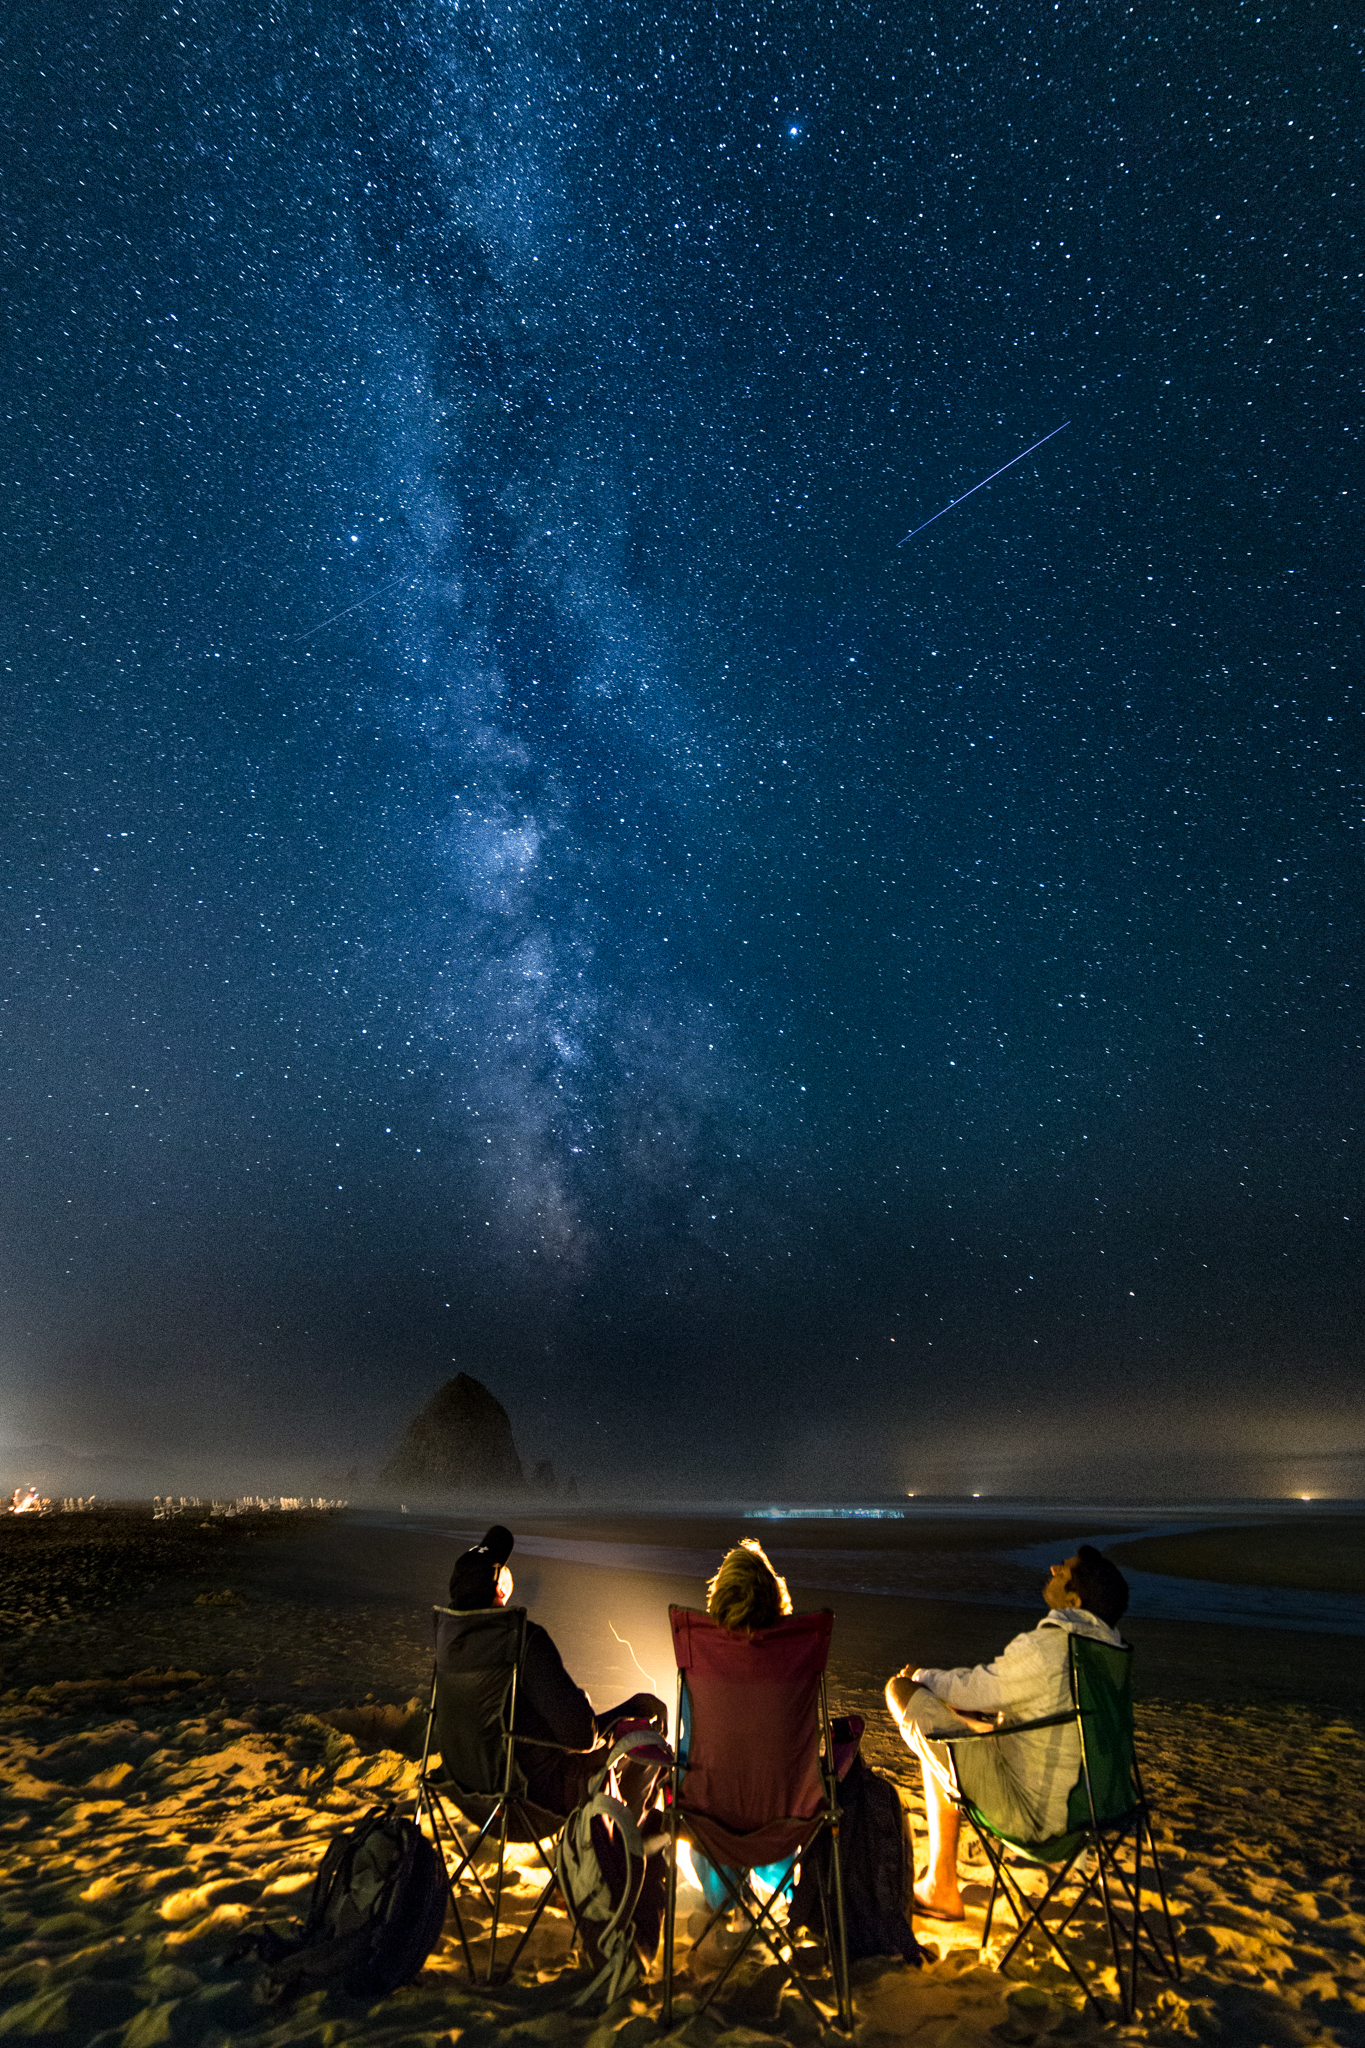 Sky Wallpapers: Starry Sky Wallpapers High Quality